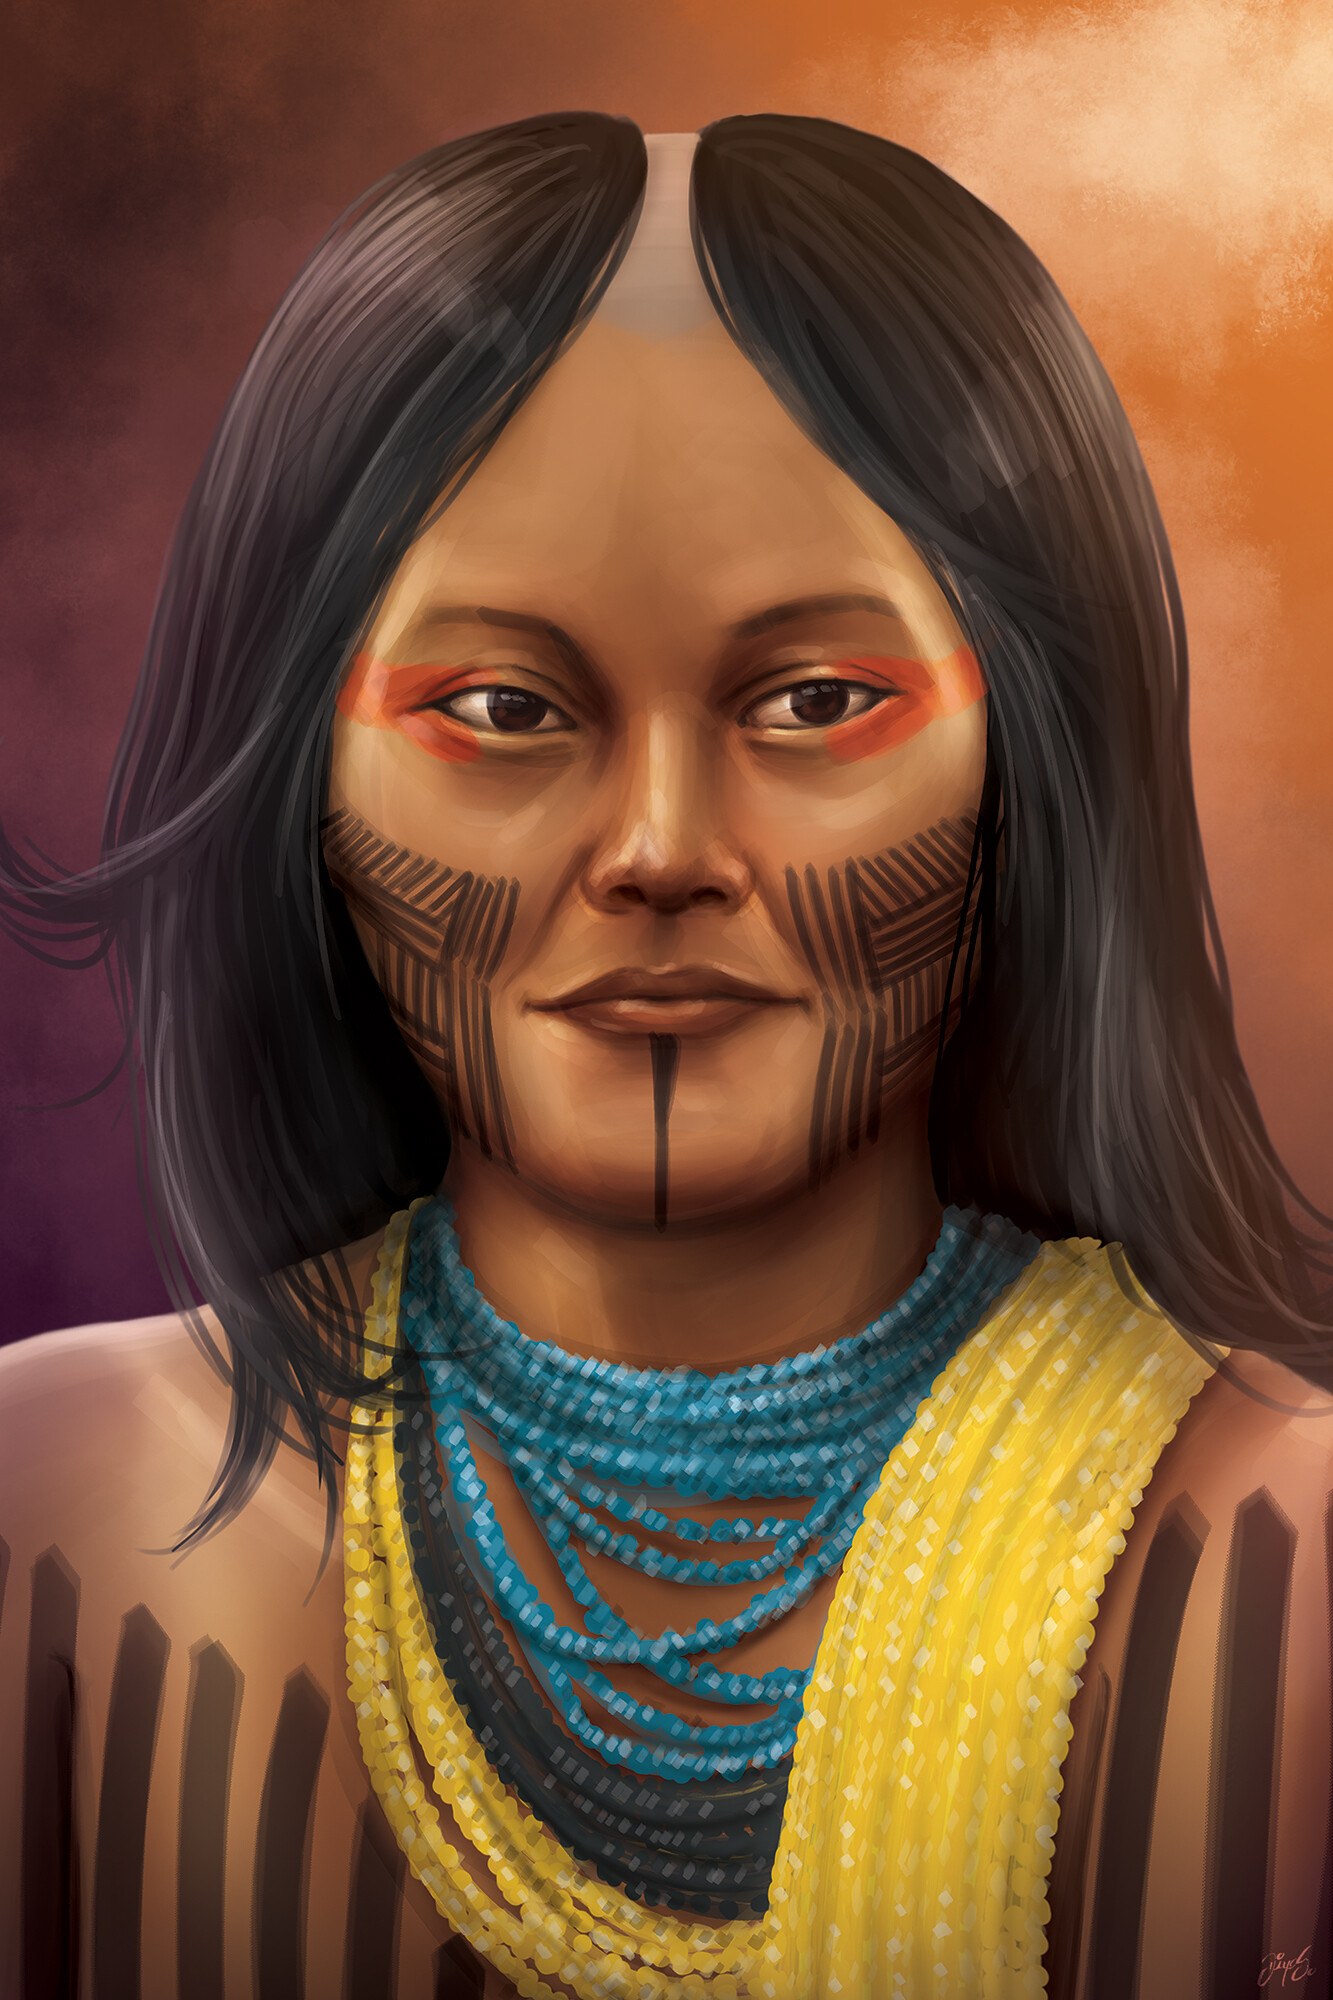 Game character - The Indian